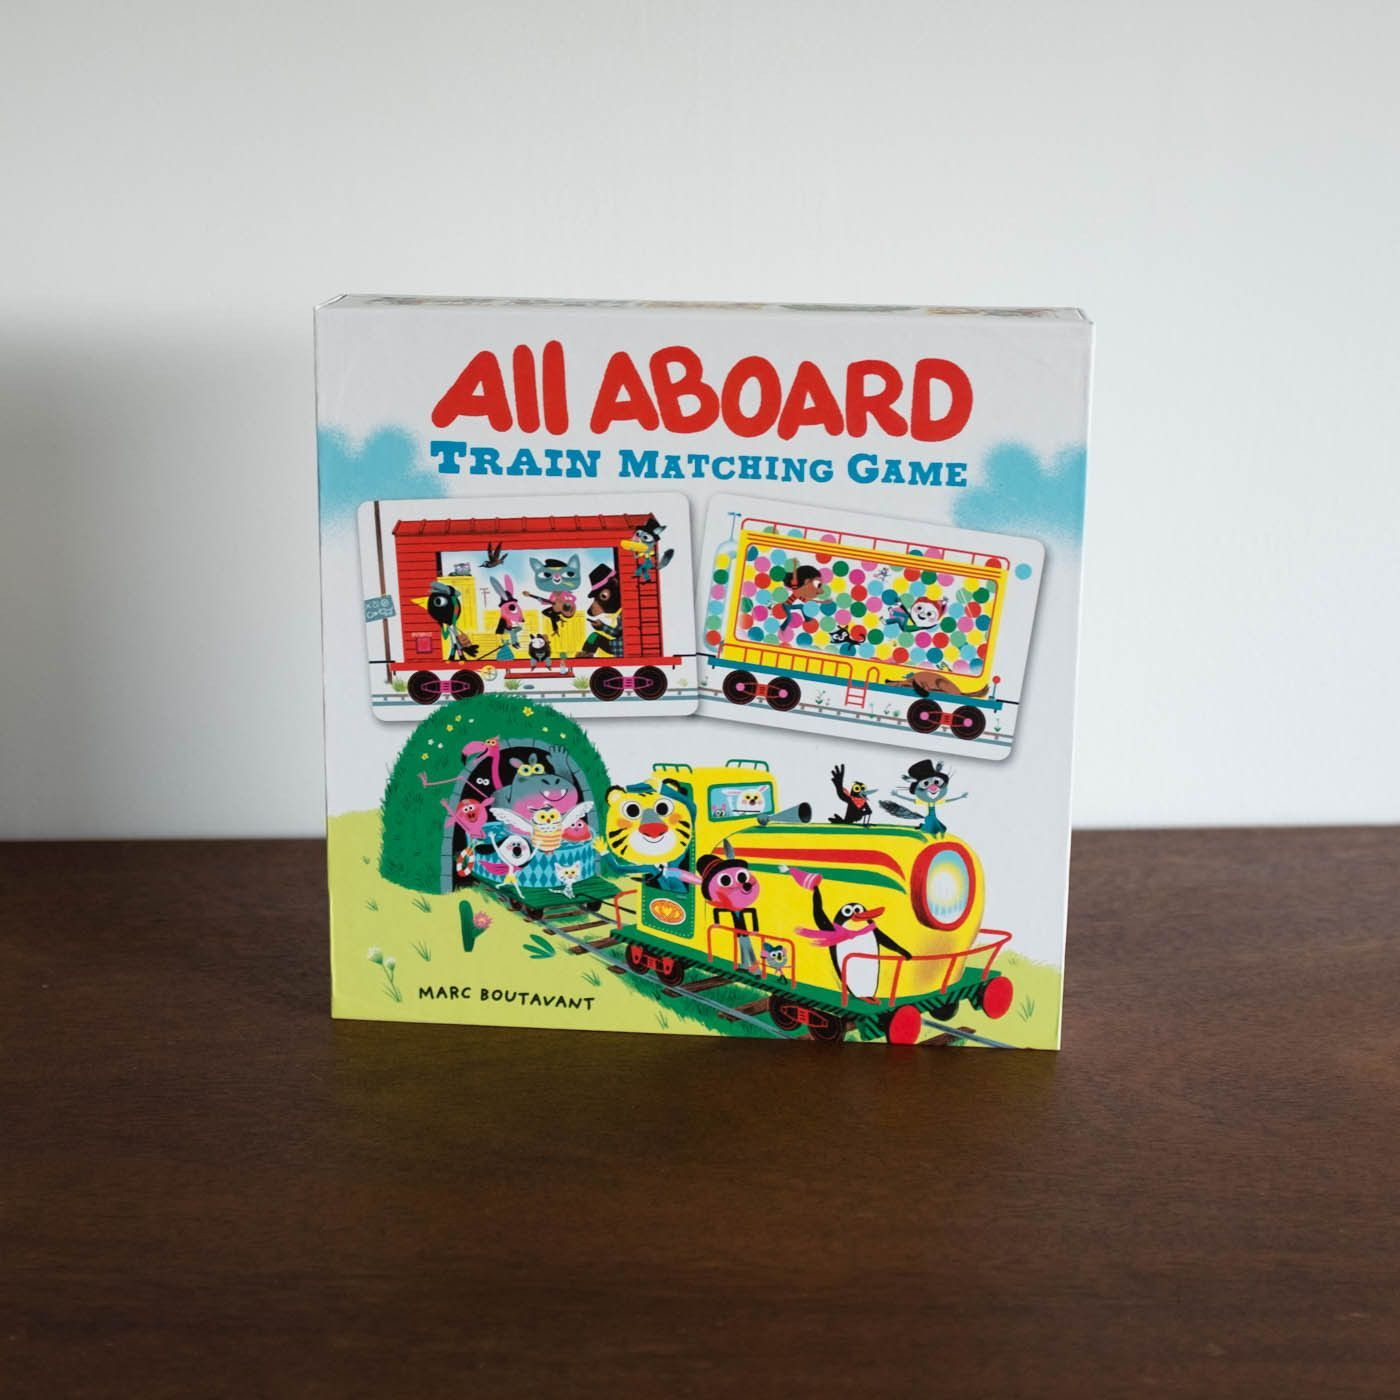 All Aboard Games